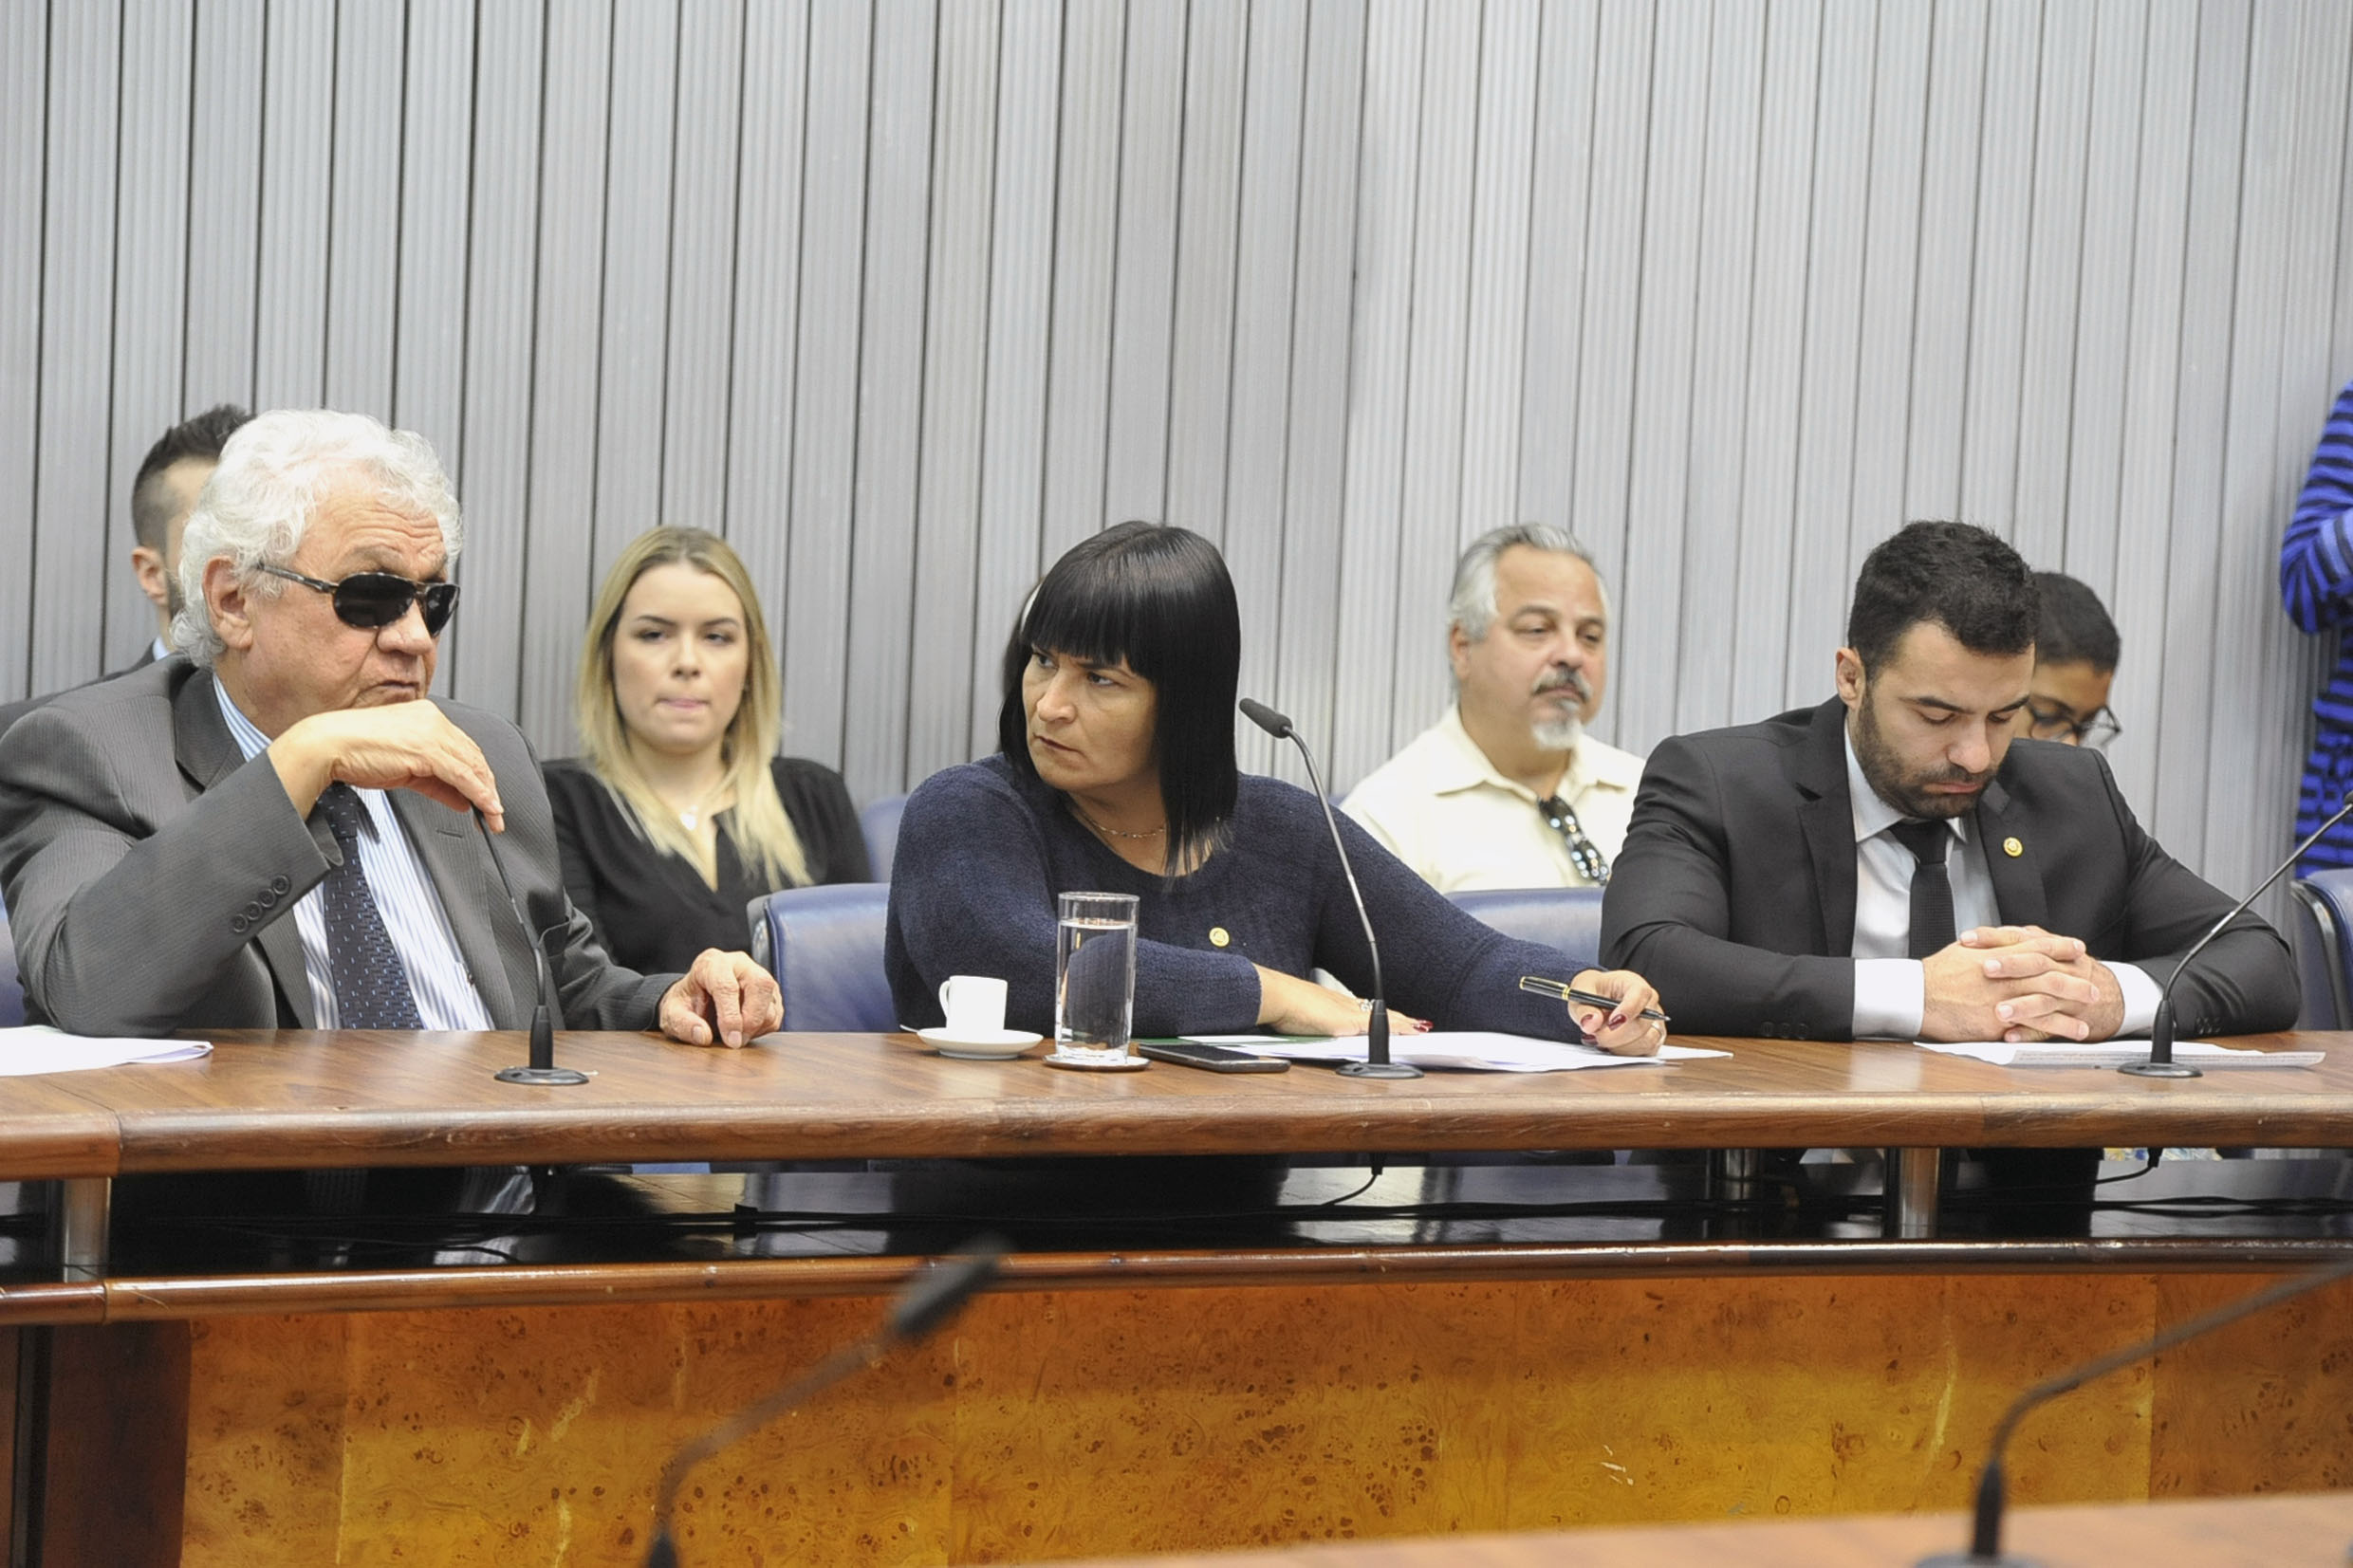 Parlamentares na comissão<a style='float:right' href='https://www3.al.sp.gov.br/repositorio/noticia/N-05-2019/fg234427.jpg' target=_blank><img src='/_img/material-file-download-white.png' width='14px' alt='Clique para baixar a imagem'></a>